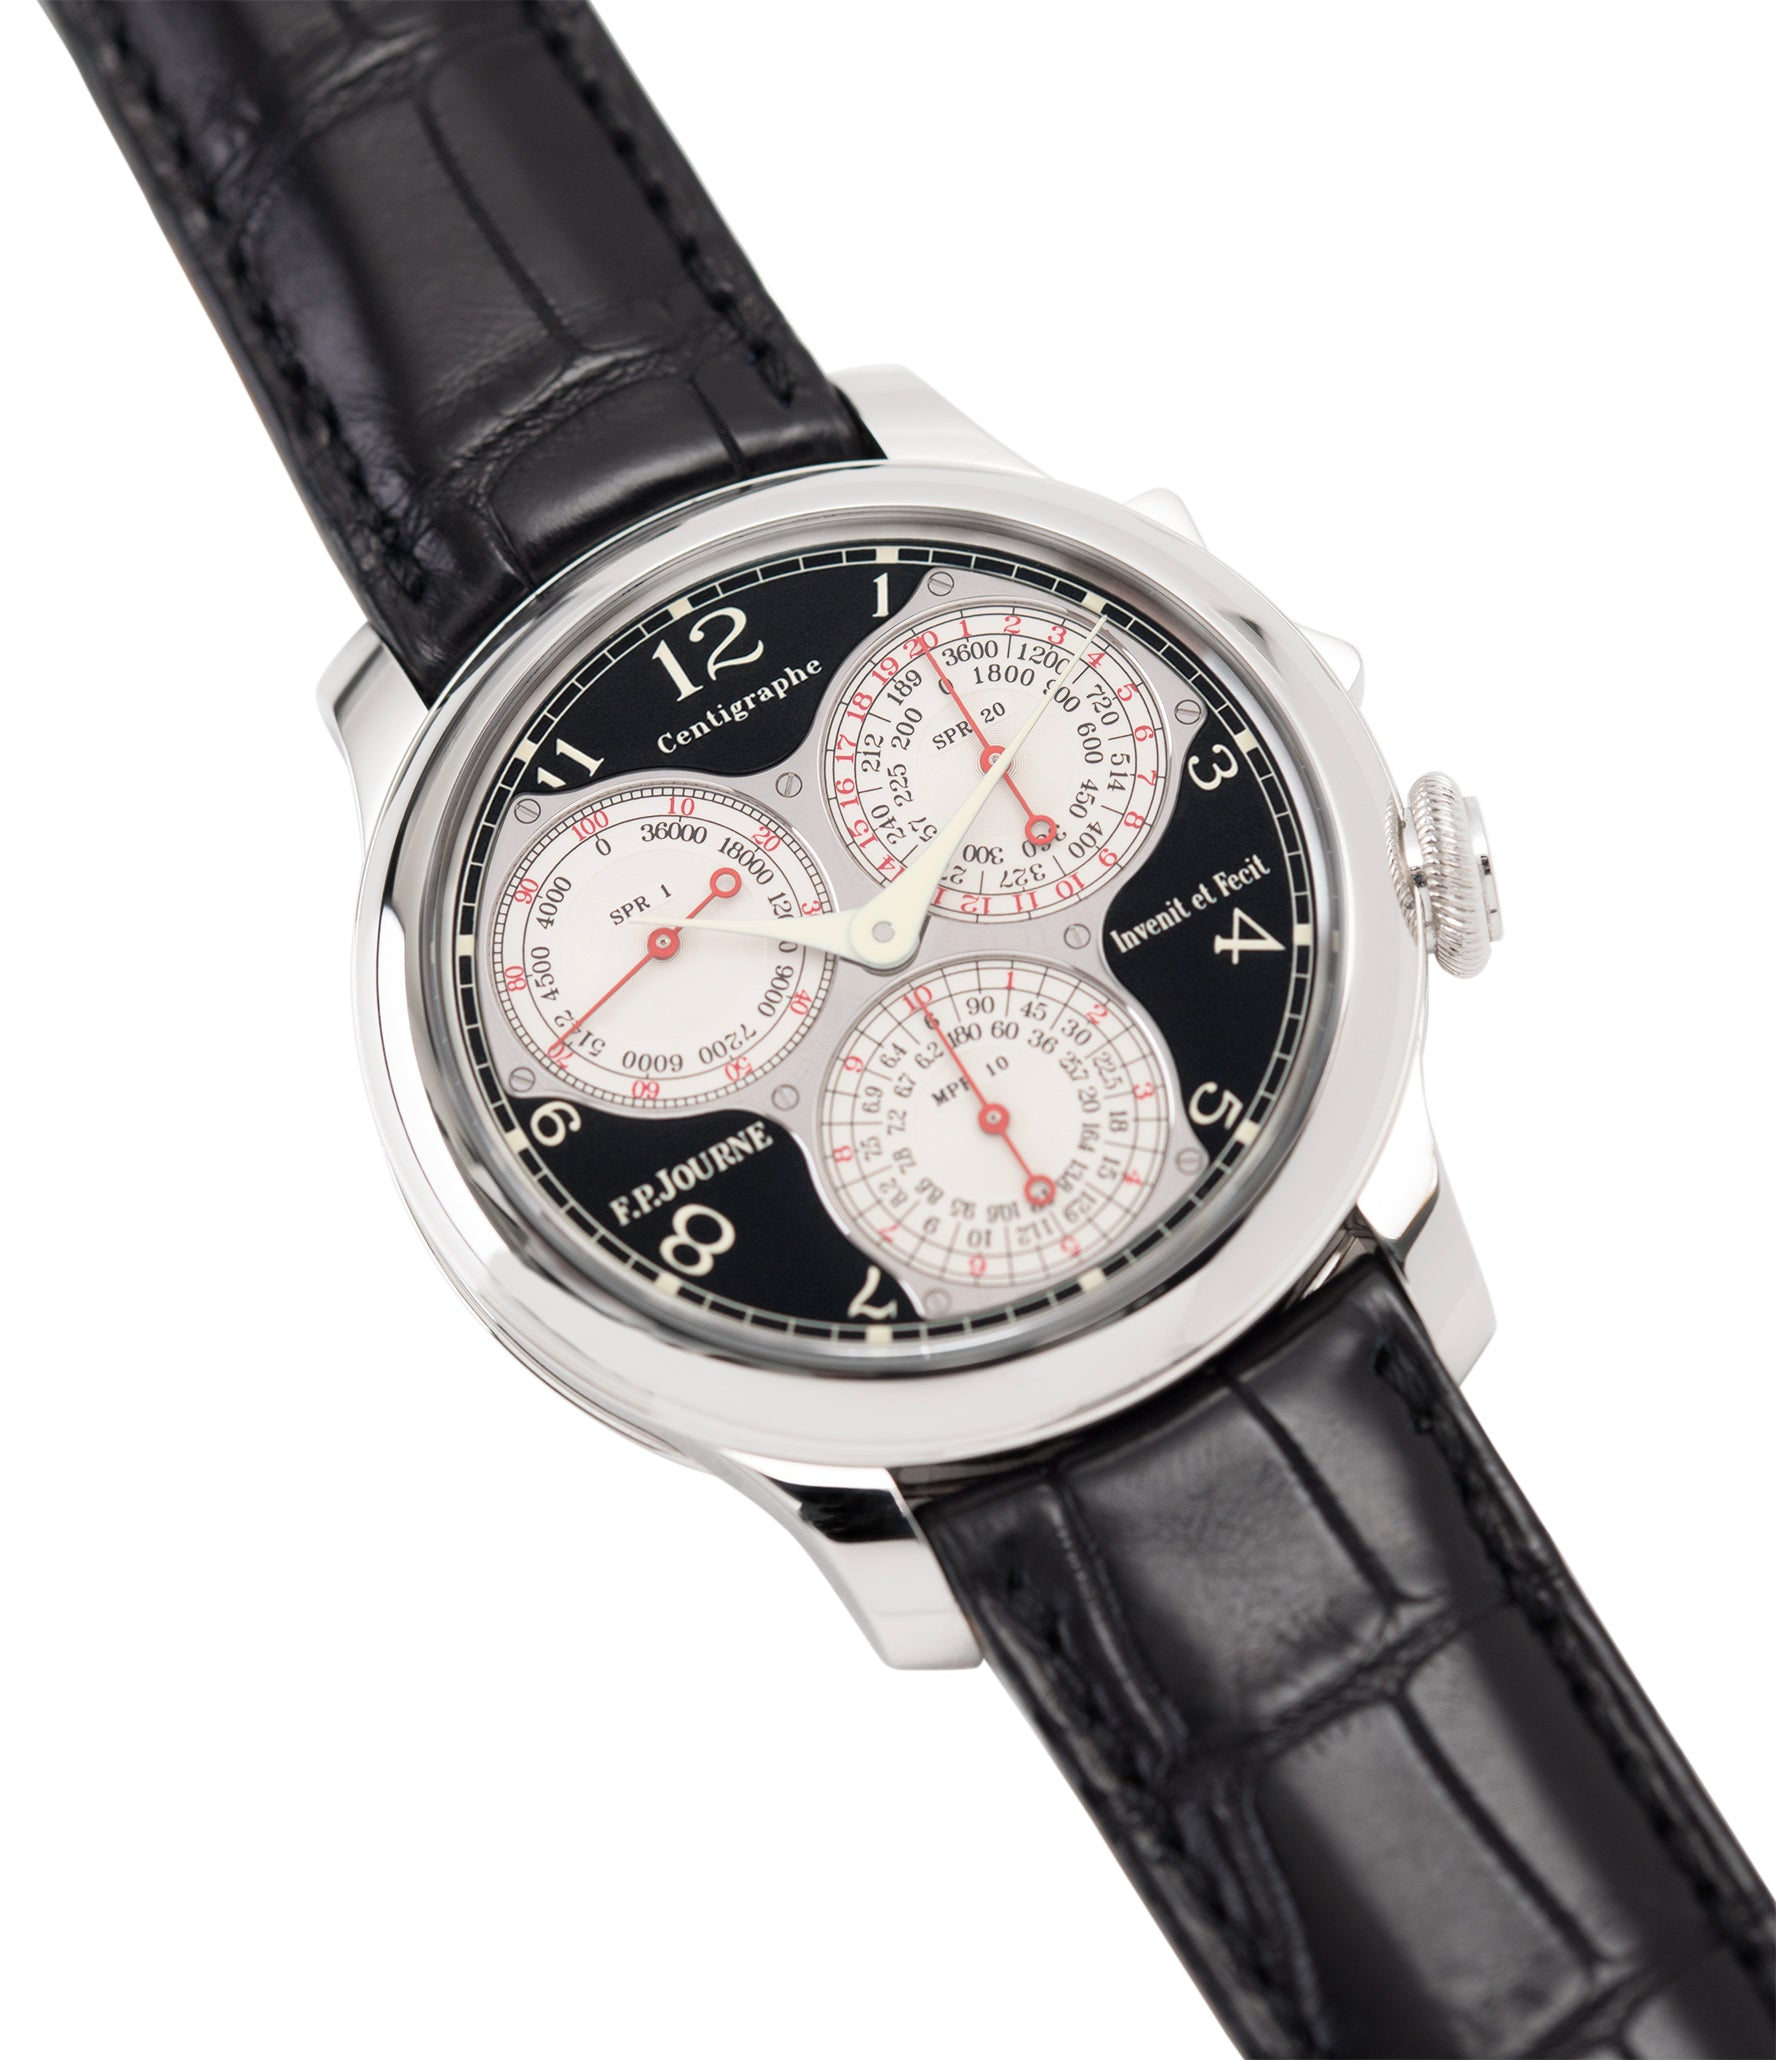 shop F. P. Journe Centigraphe Souverain Black Label 40 mm platinum pre-owned rare watch for sale online at A Collected Man London approved retailer of independent watchmakers